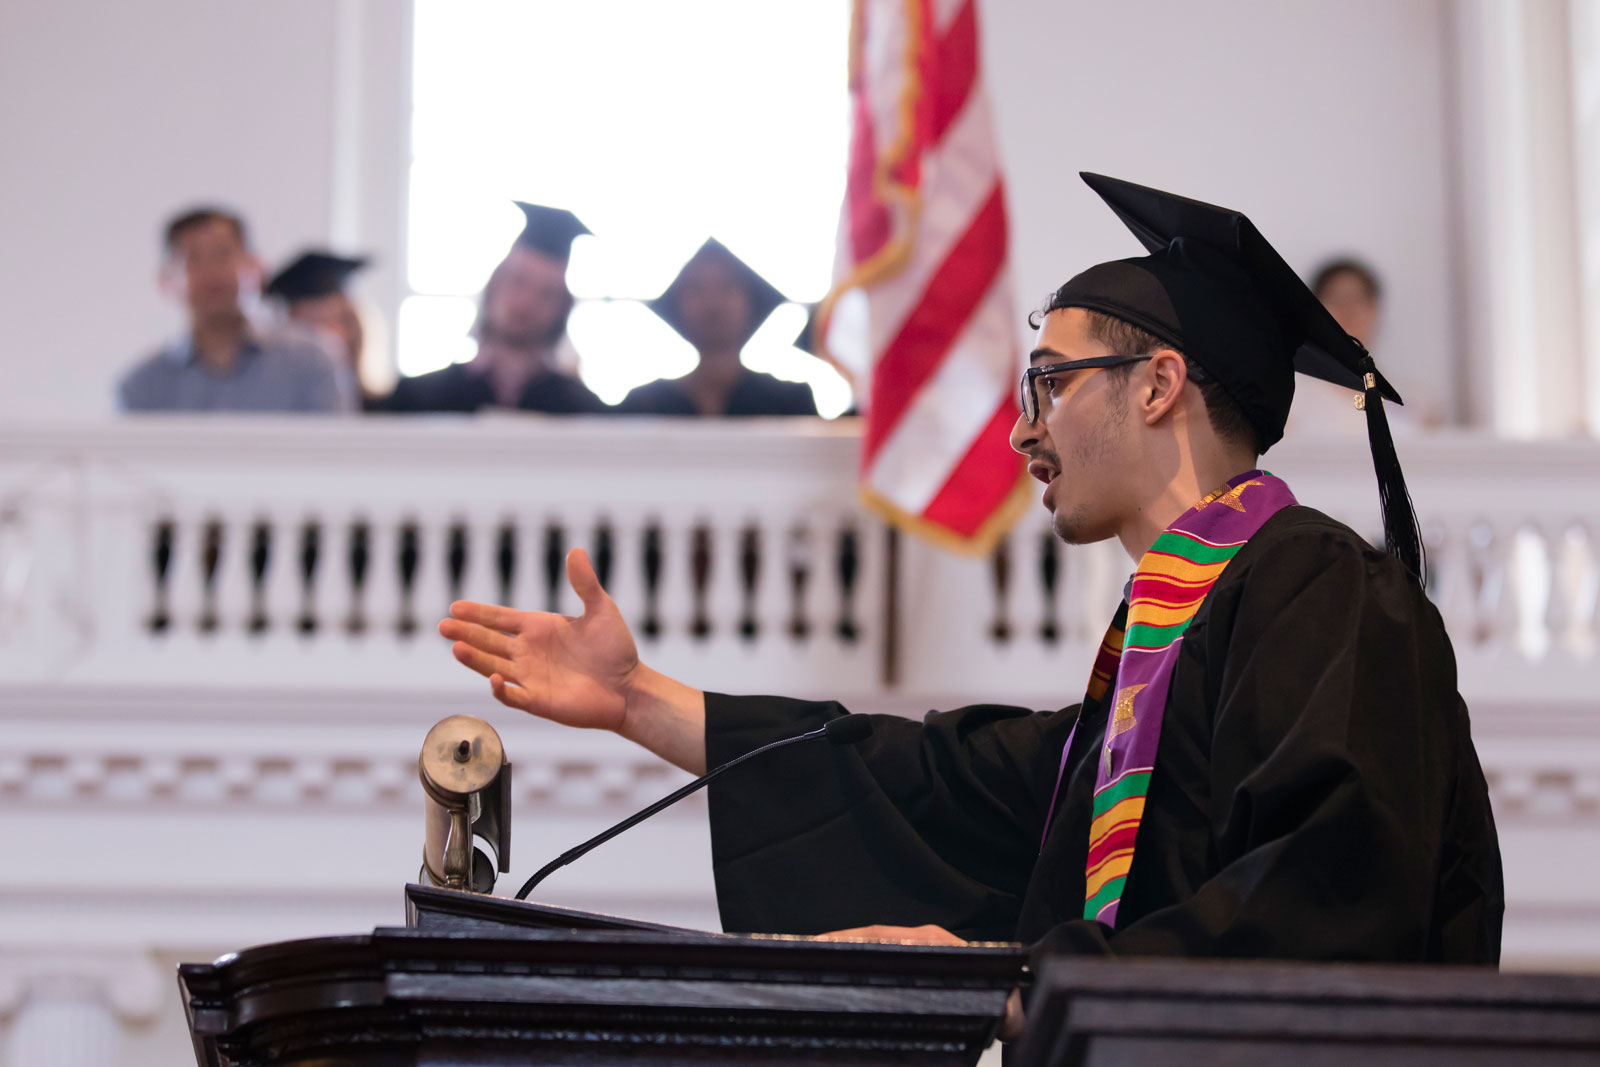 Mohamed Ahmed Ramy '18 speaks at the podium